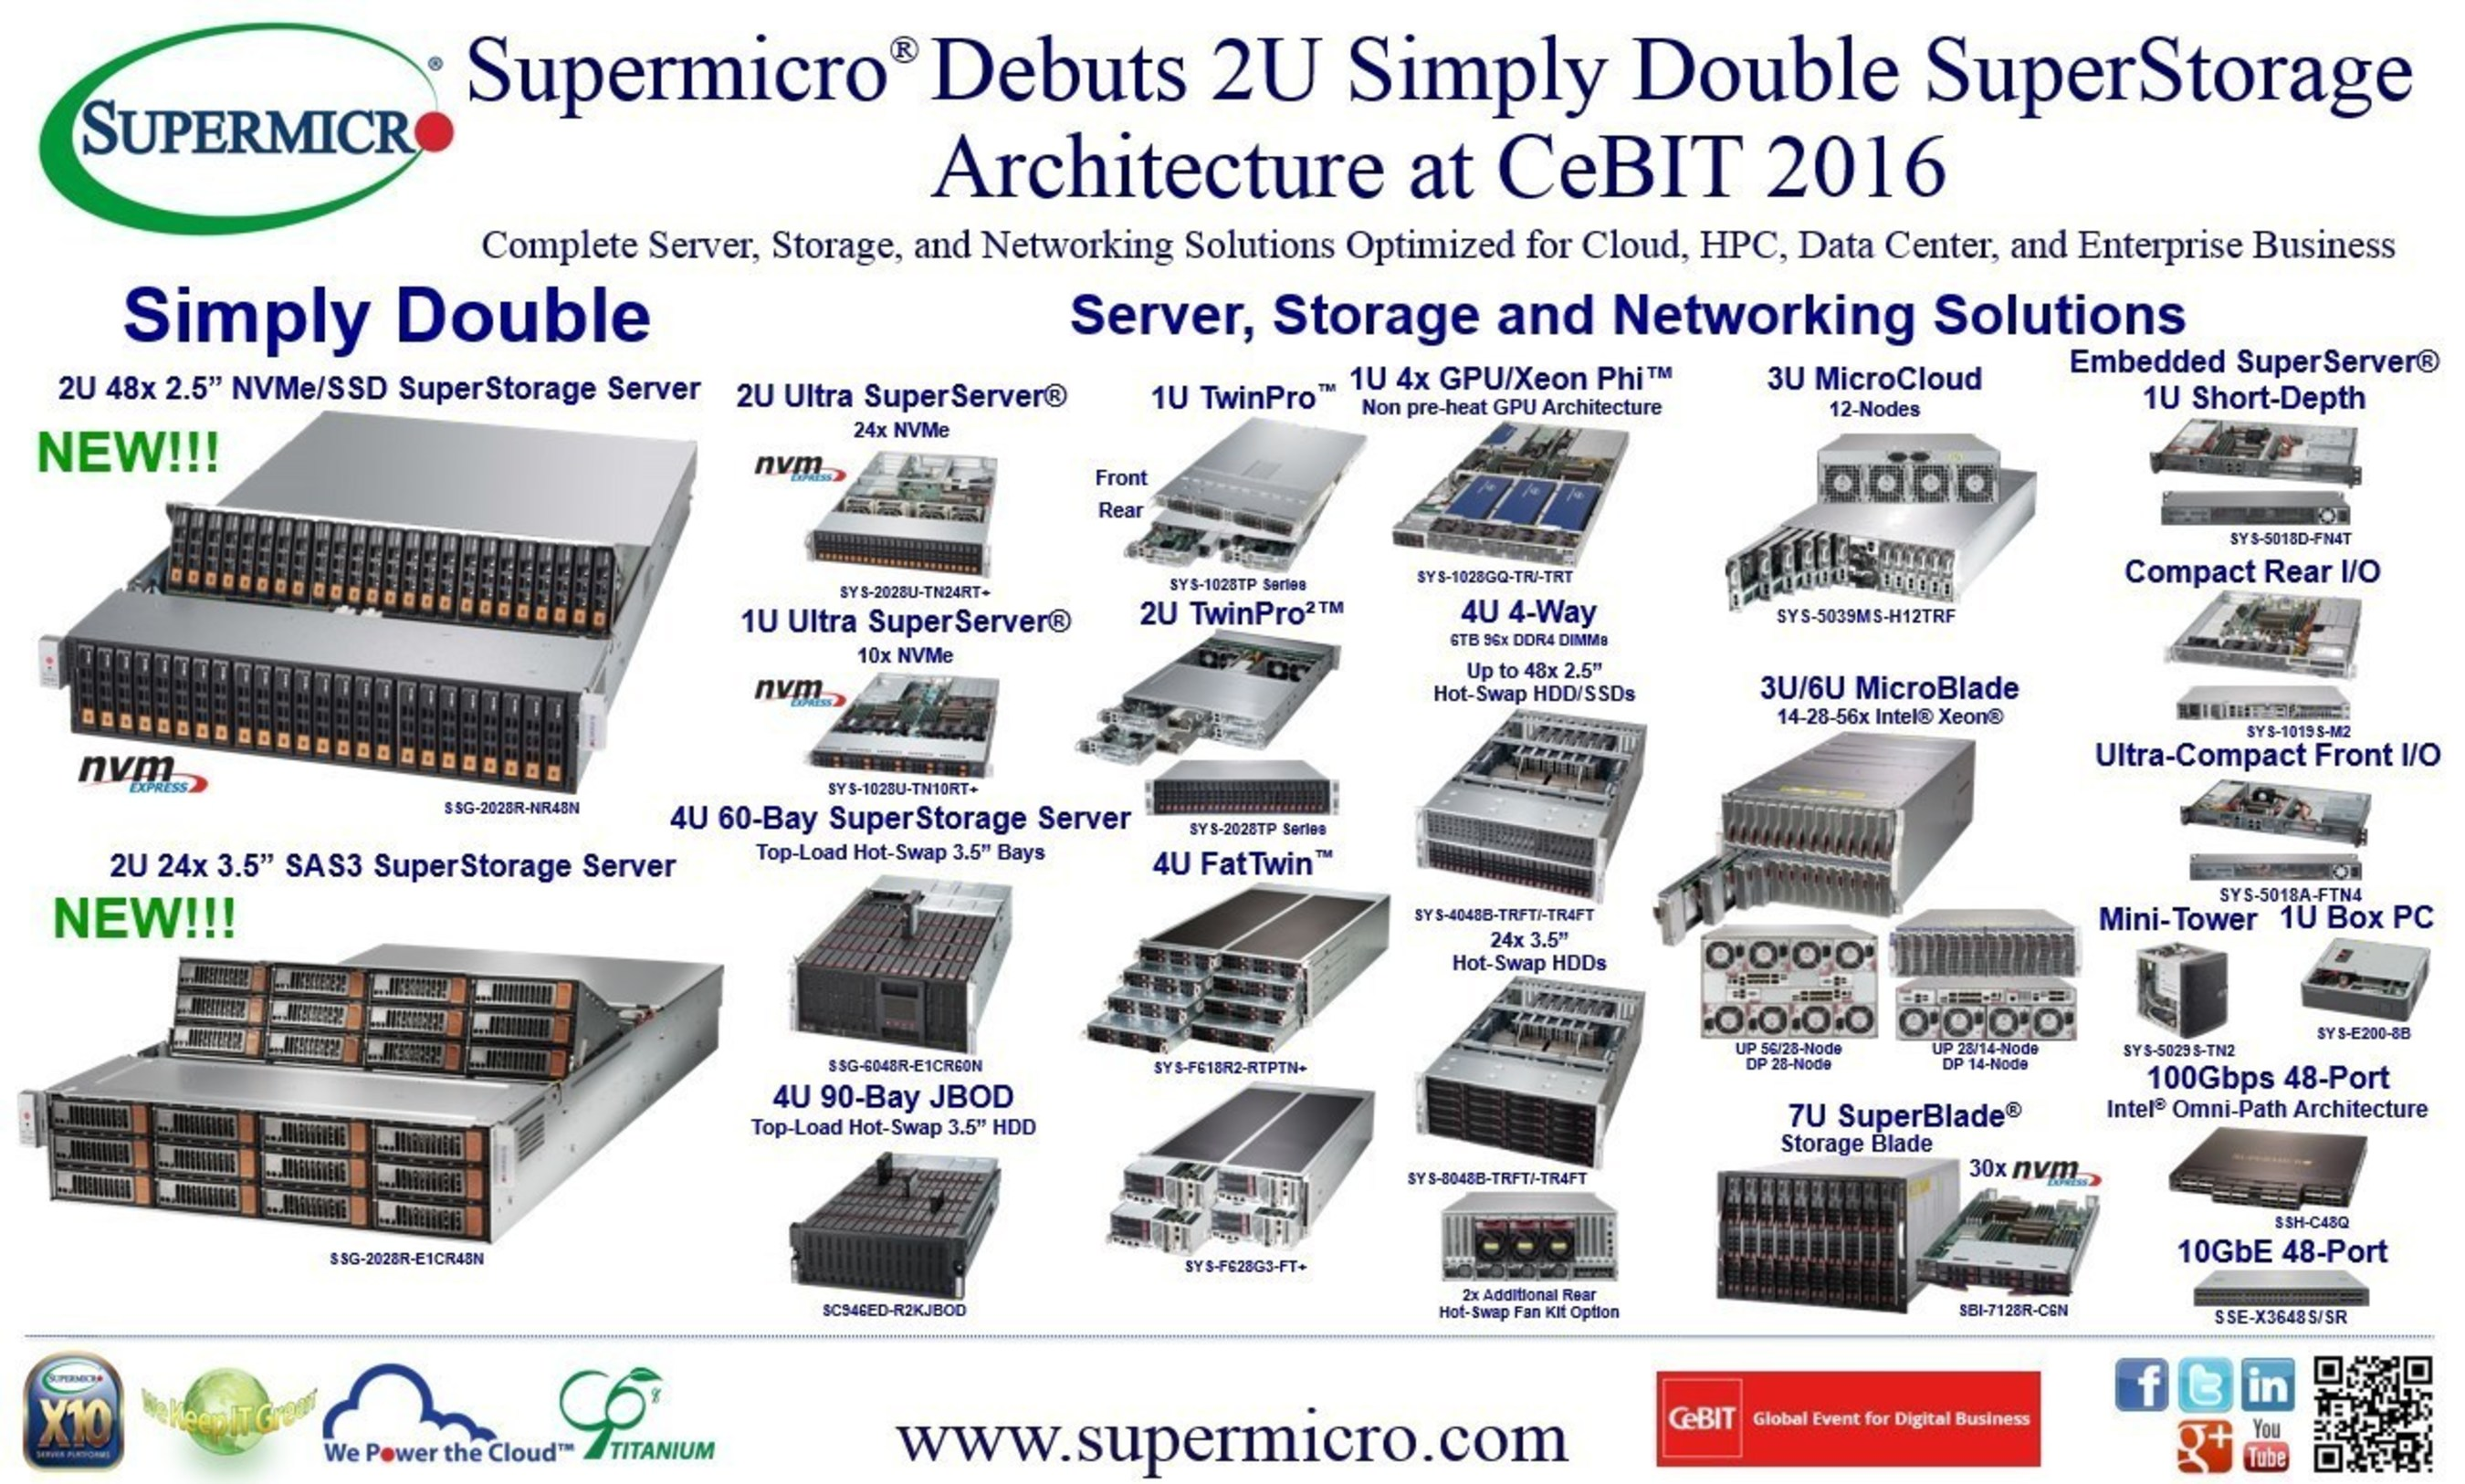 Supermicro(R) Debuts Simply Double Storage Architecture Optimized for Cloud, HPC, Data Center, and Enterprise ...